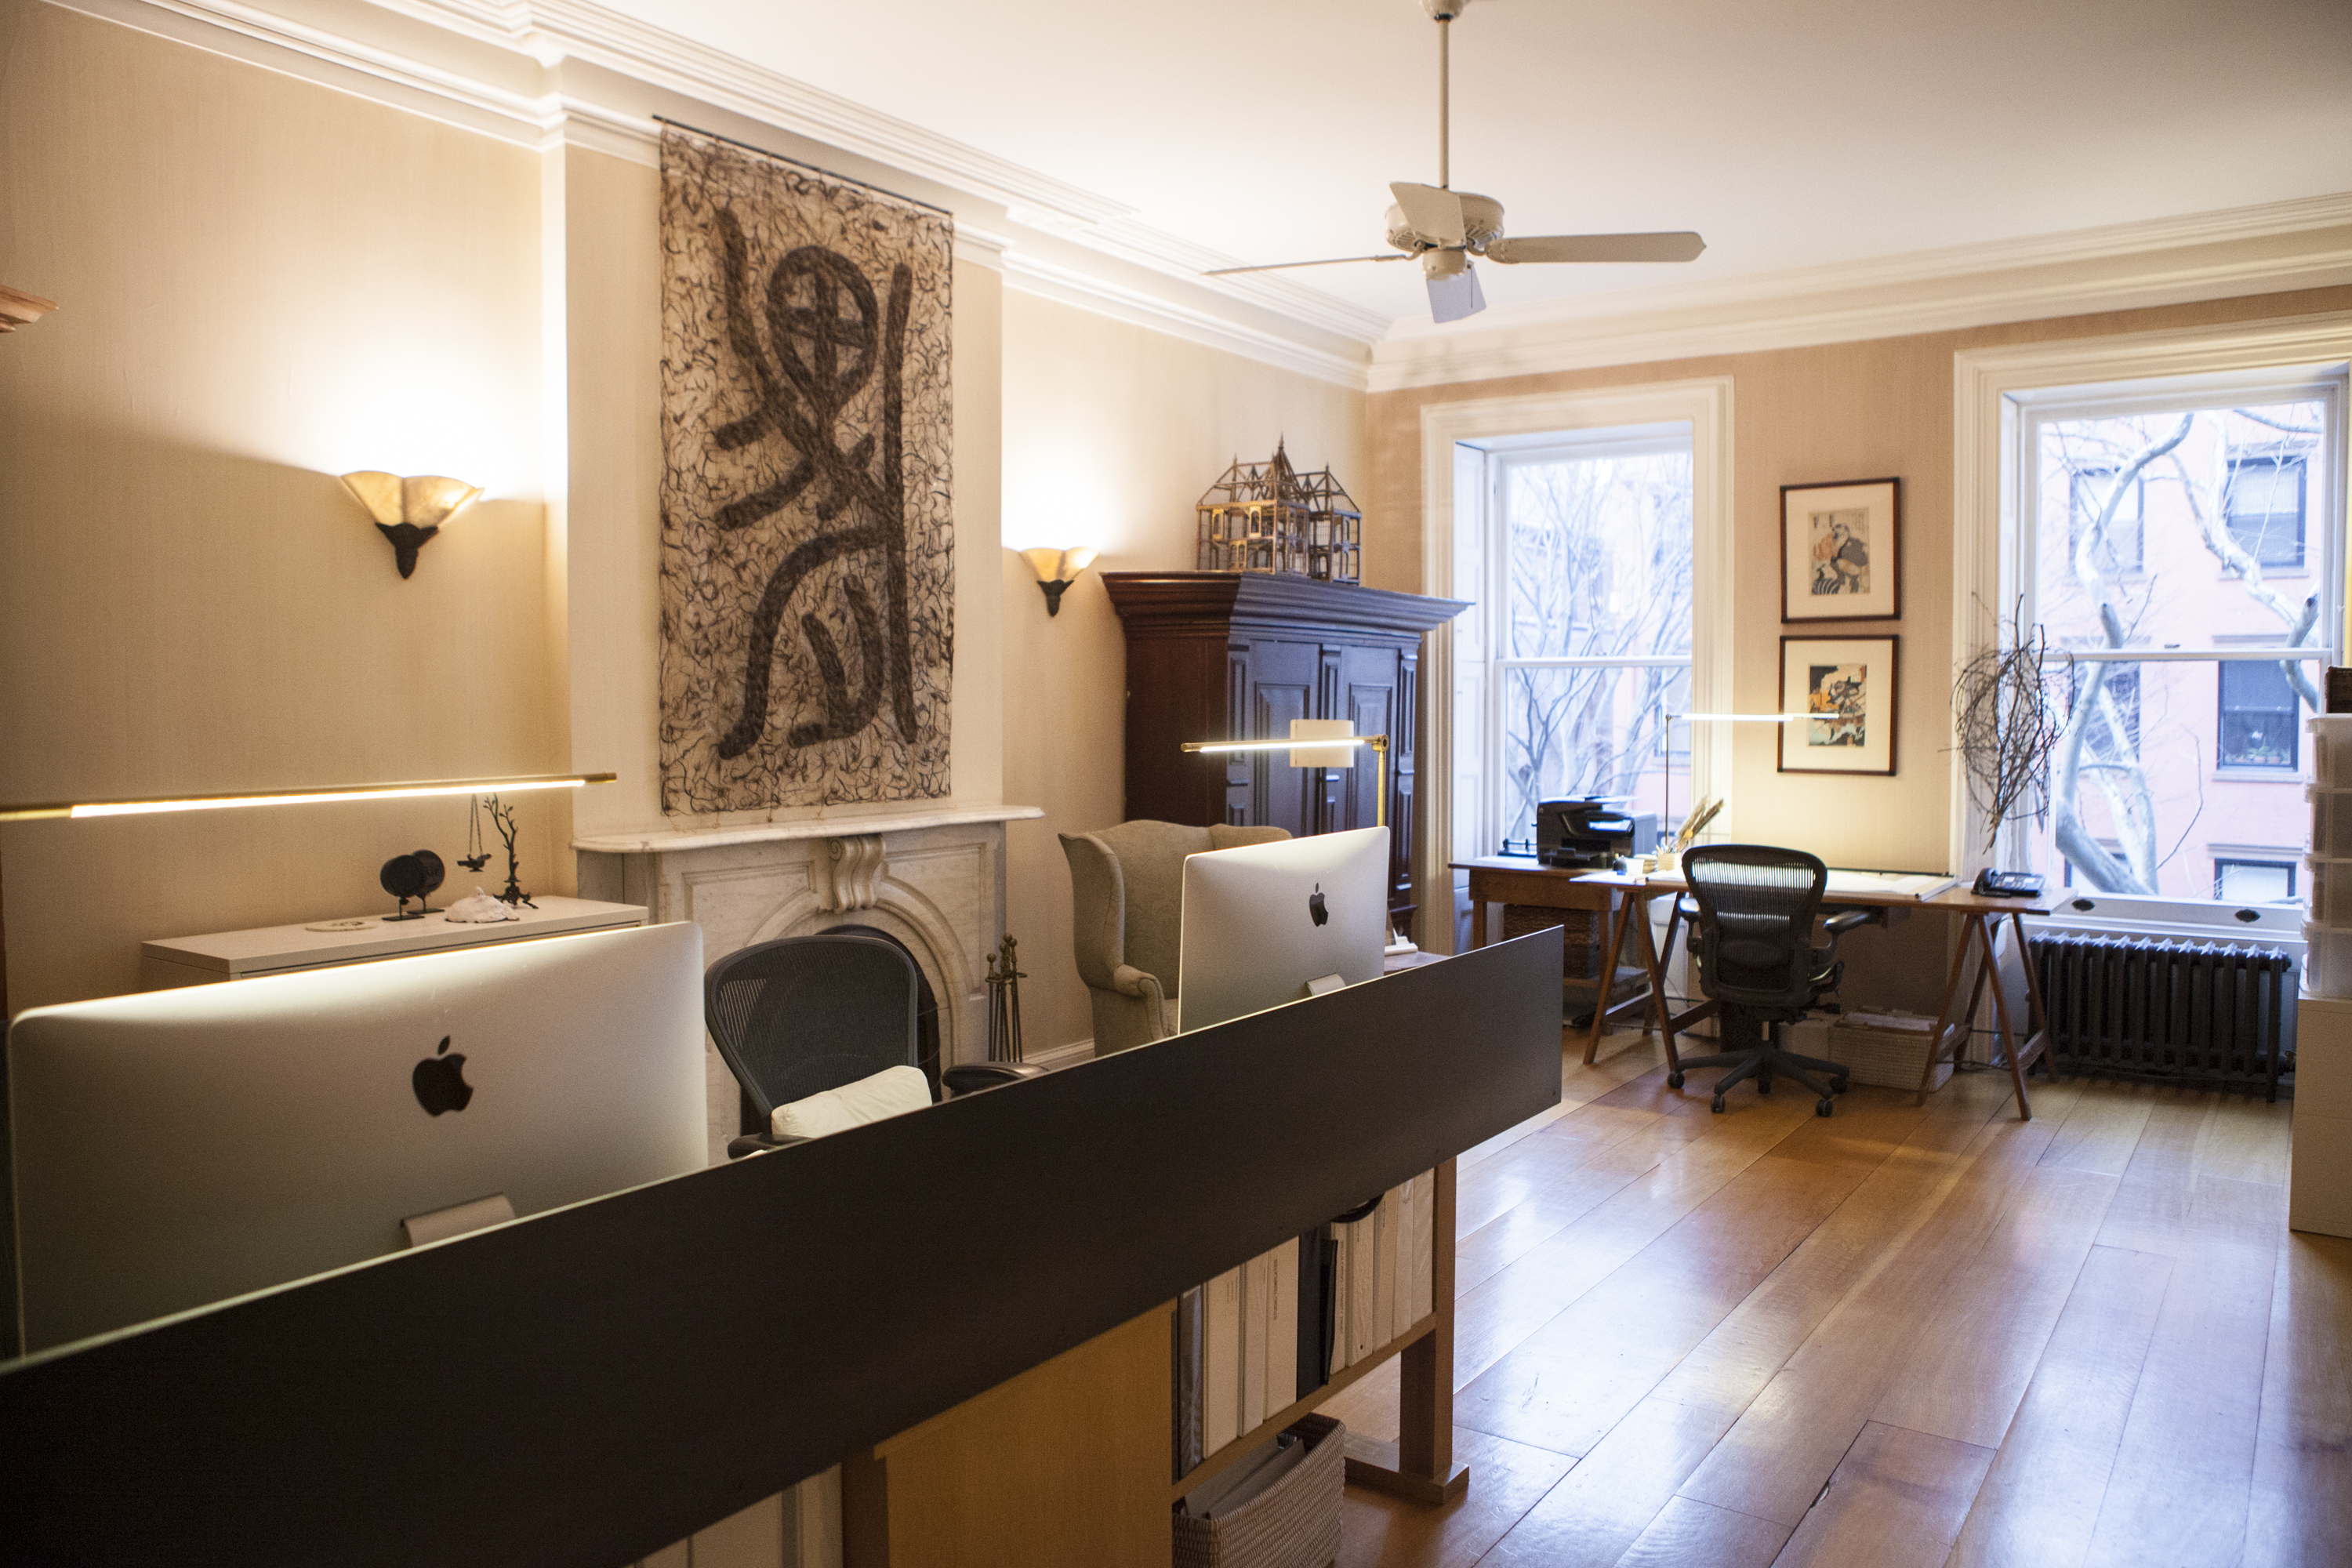 The Kathryn Scott Design Studio, on the second level of the townhouse